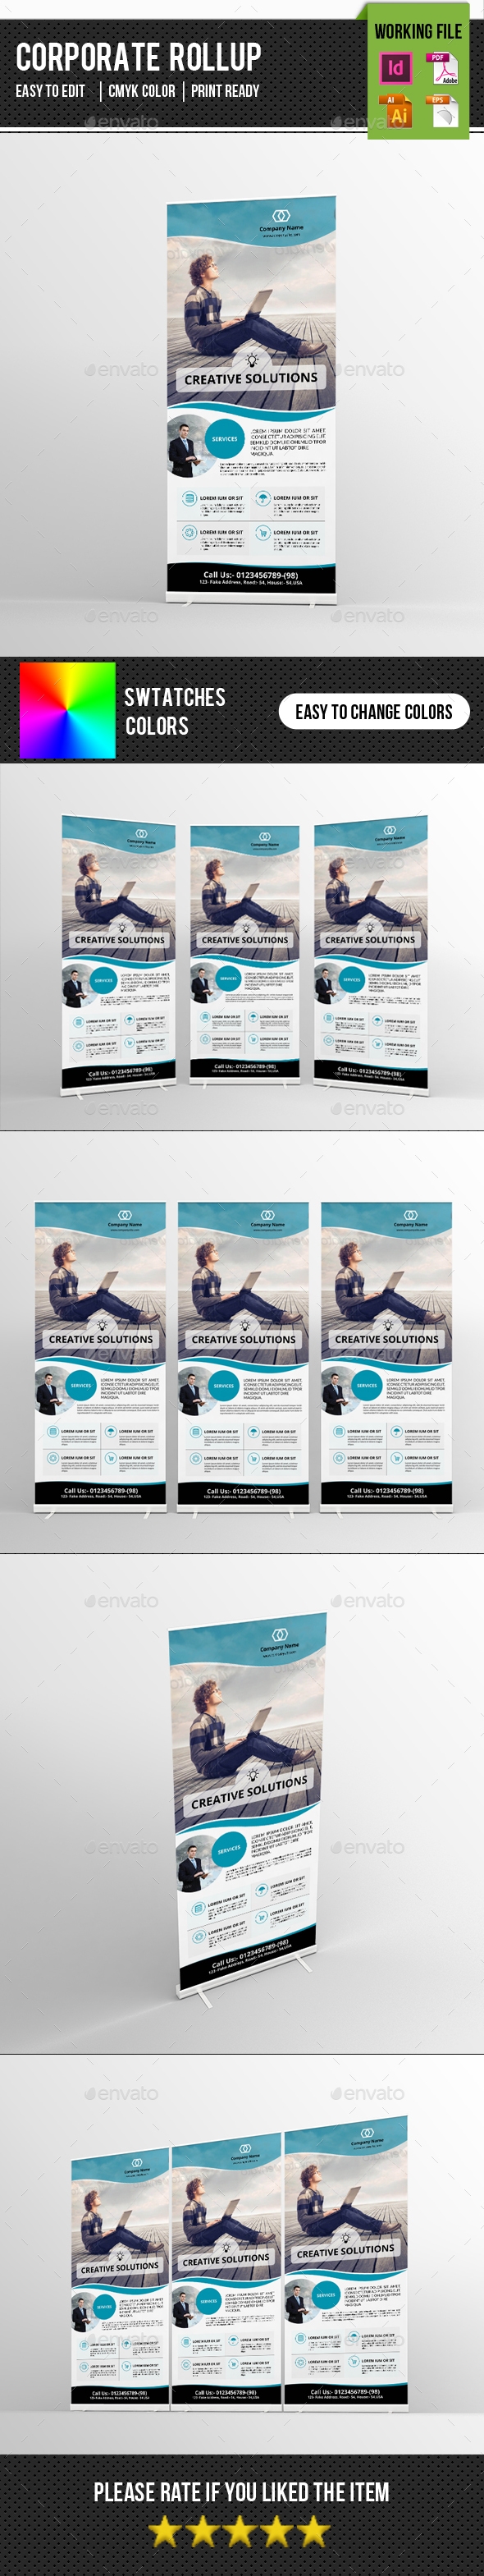 Corporate Roll-up Template-V10 - Signage Print Templates